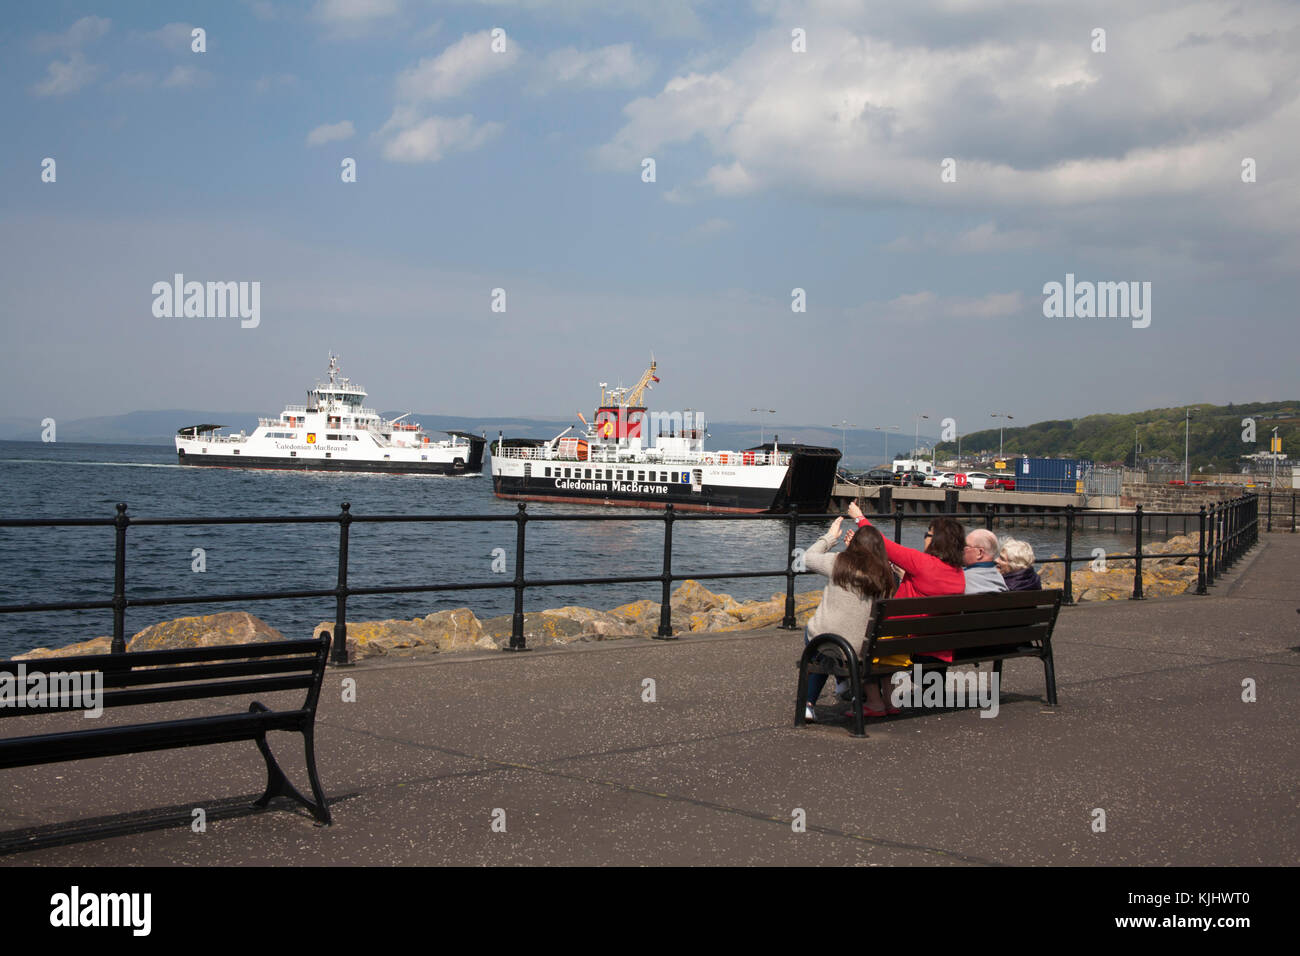 The Cal Mac Ferries Loch Shira or Loch Siora and Loch Riddon at the ferry pier Largs Ayrshire Scotland - Stock Image